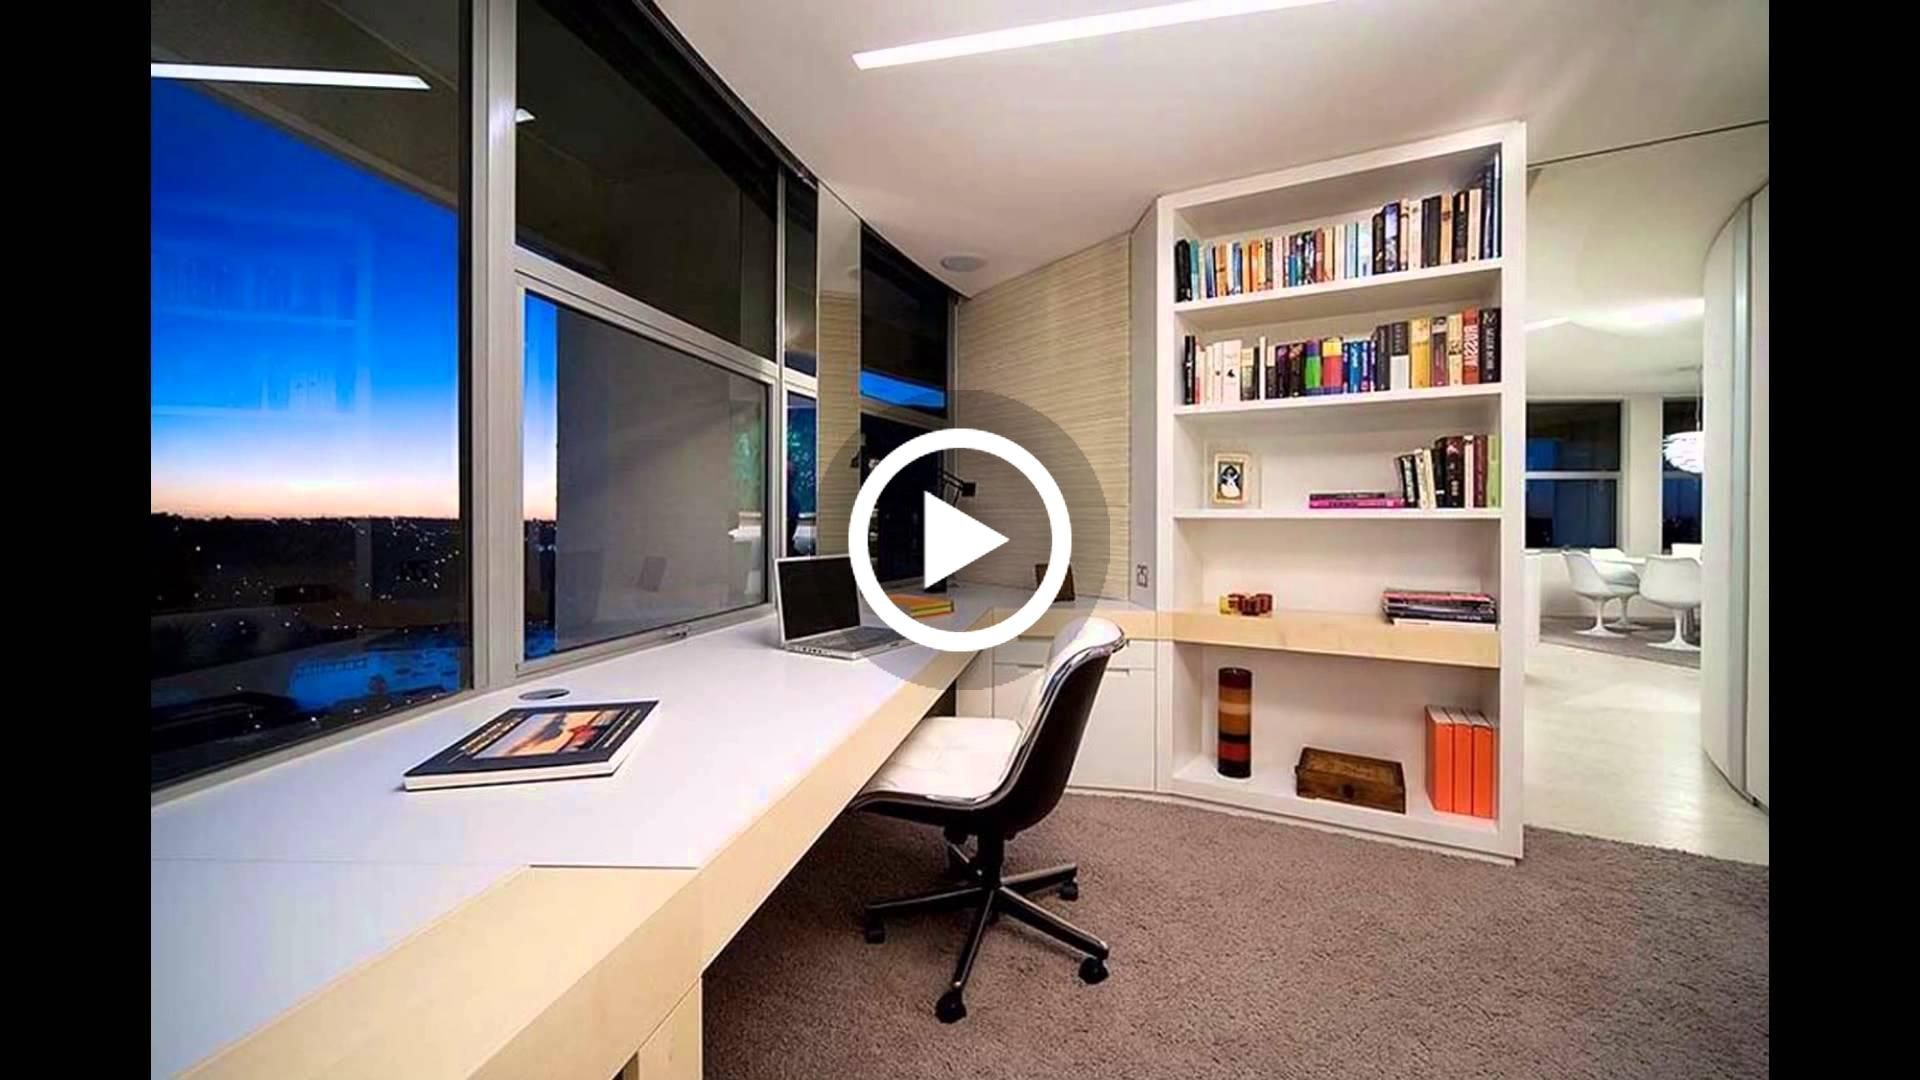 extravagant home office room. VIDEO: Design Ideas For Small Home Office Spaces #lighting Checkout The Mine All Extravagant Room E